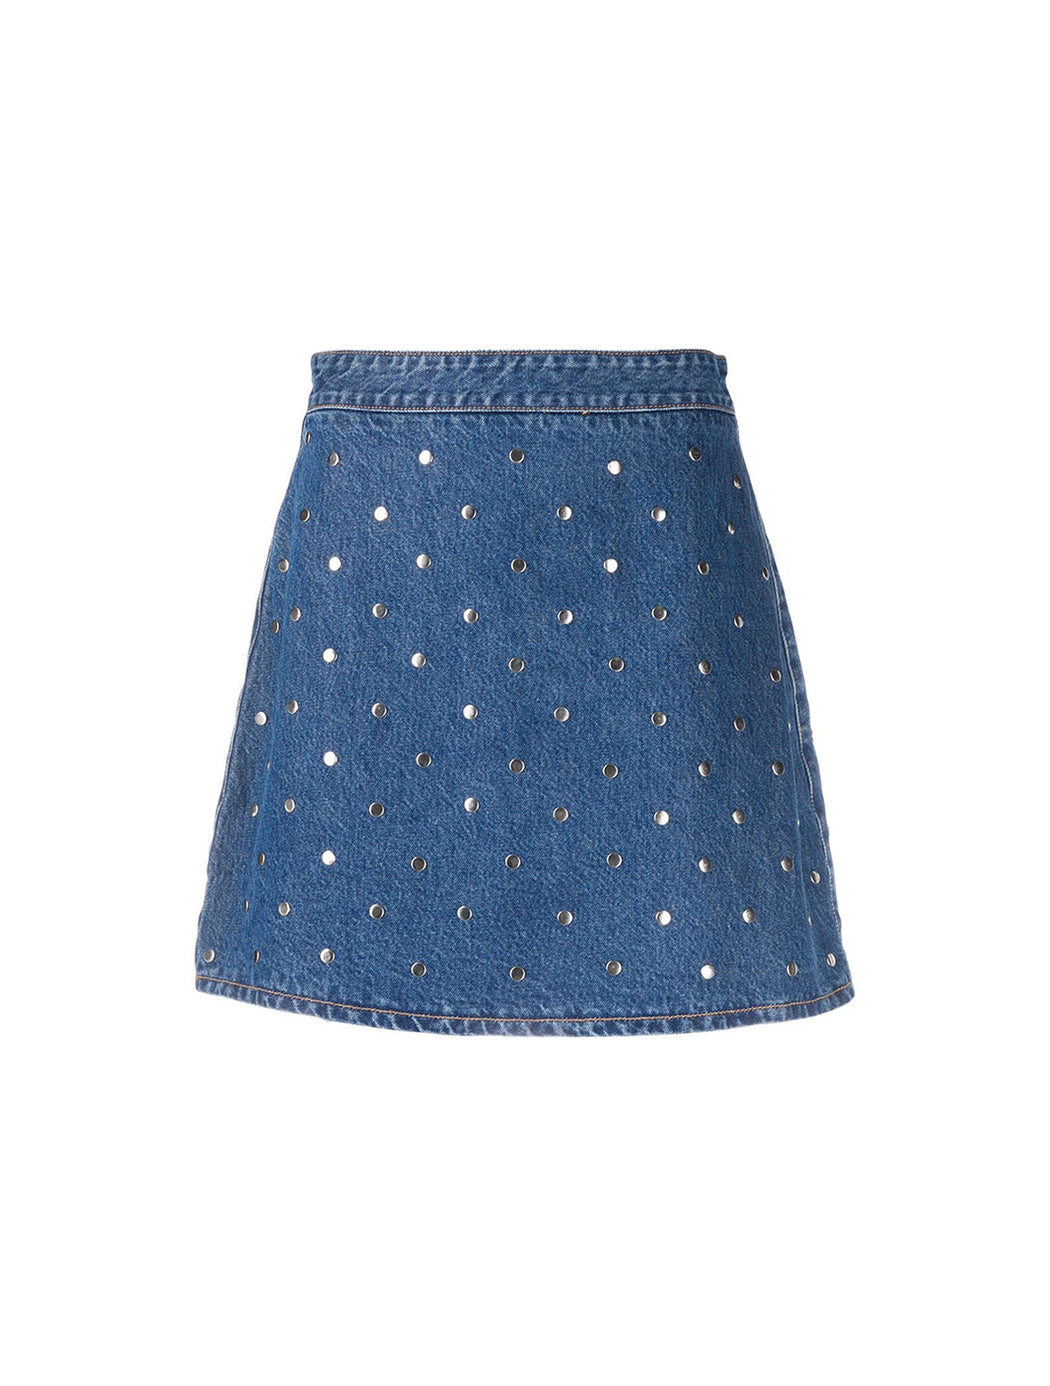 Stud Denim Skirt